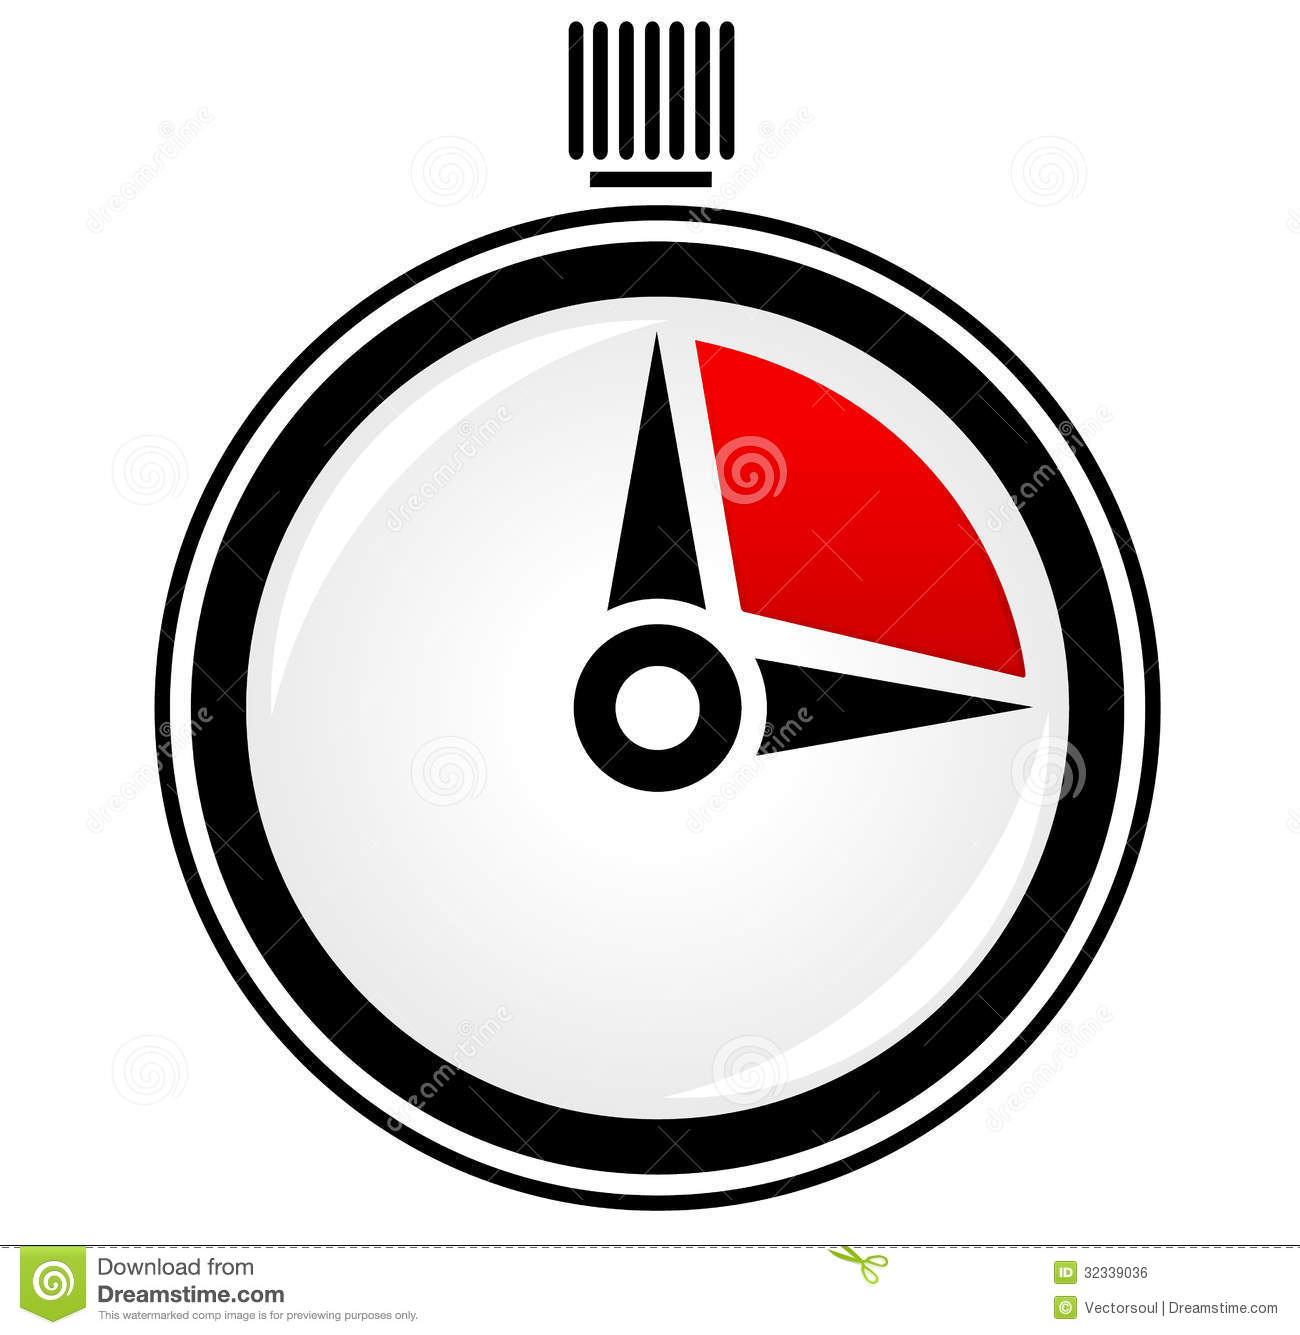 Timer, Stopwatch, Time Concept Vector Royalty Free Stock Image.